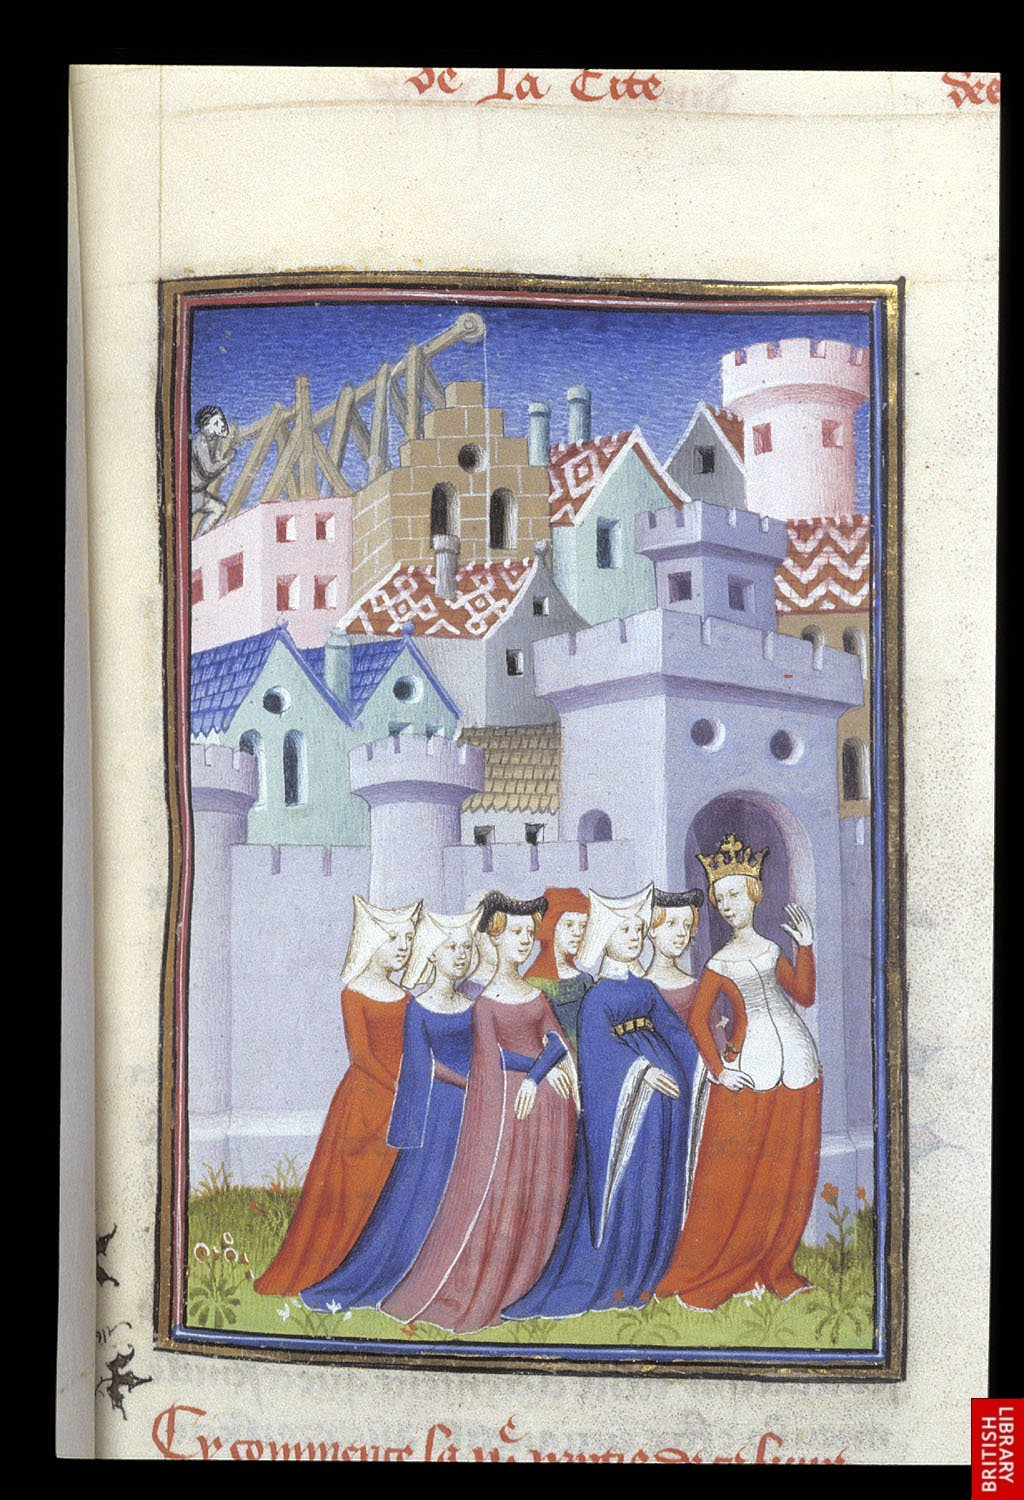 1410 - The Book of the Queen - entering the Cite des dames - by Master of the Cite Des Dames